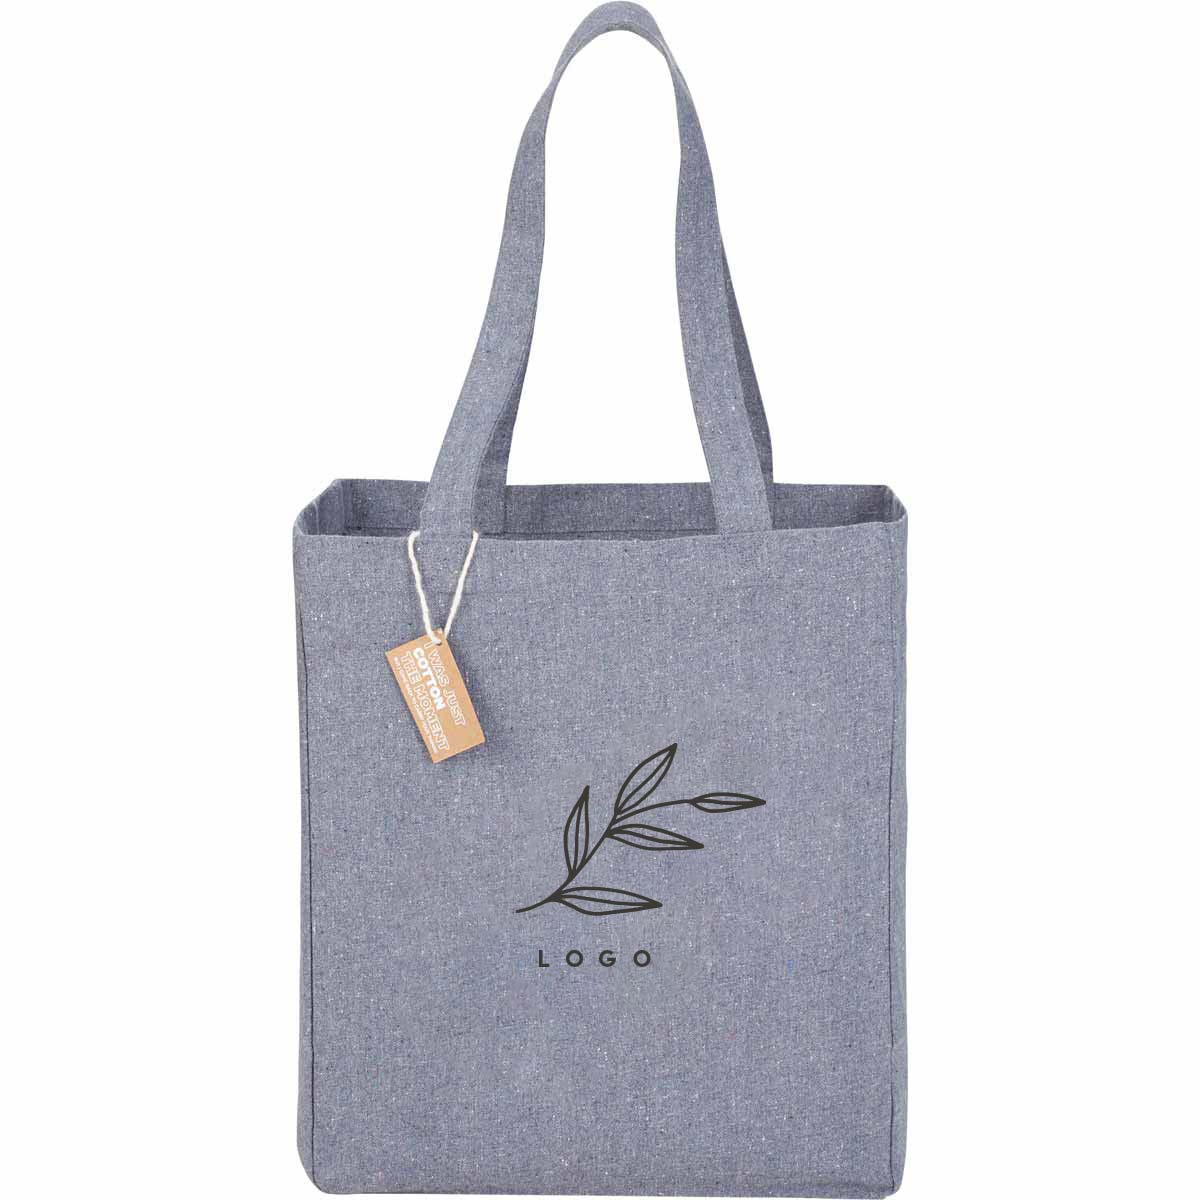 287074 lilou eco cotton tote one color one location imprint